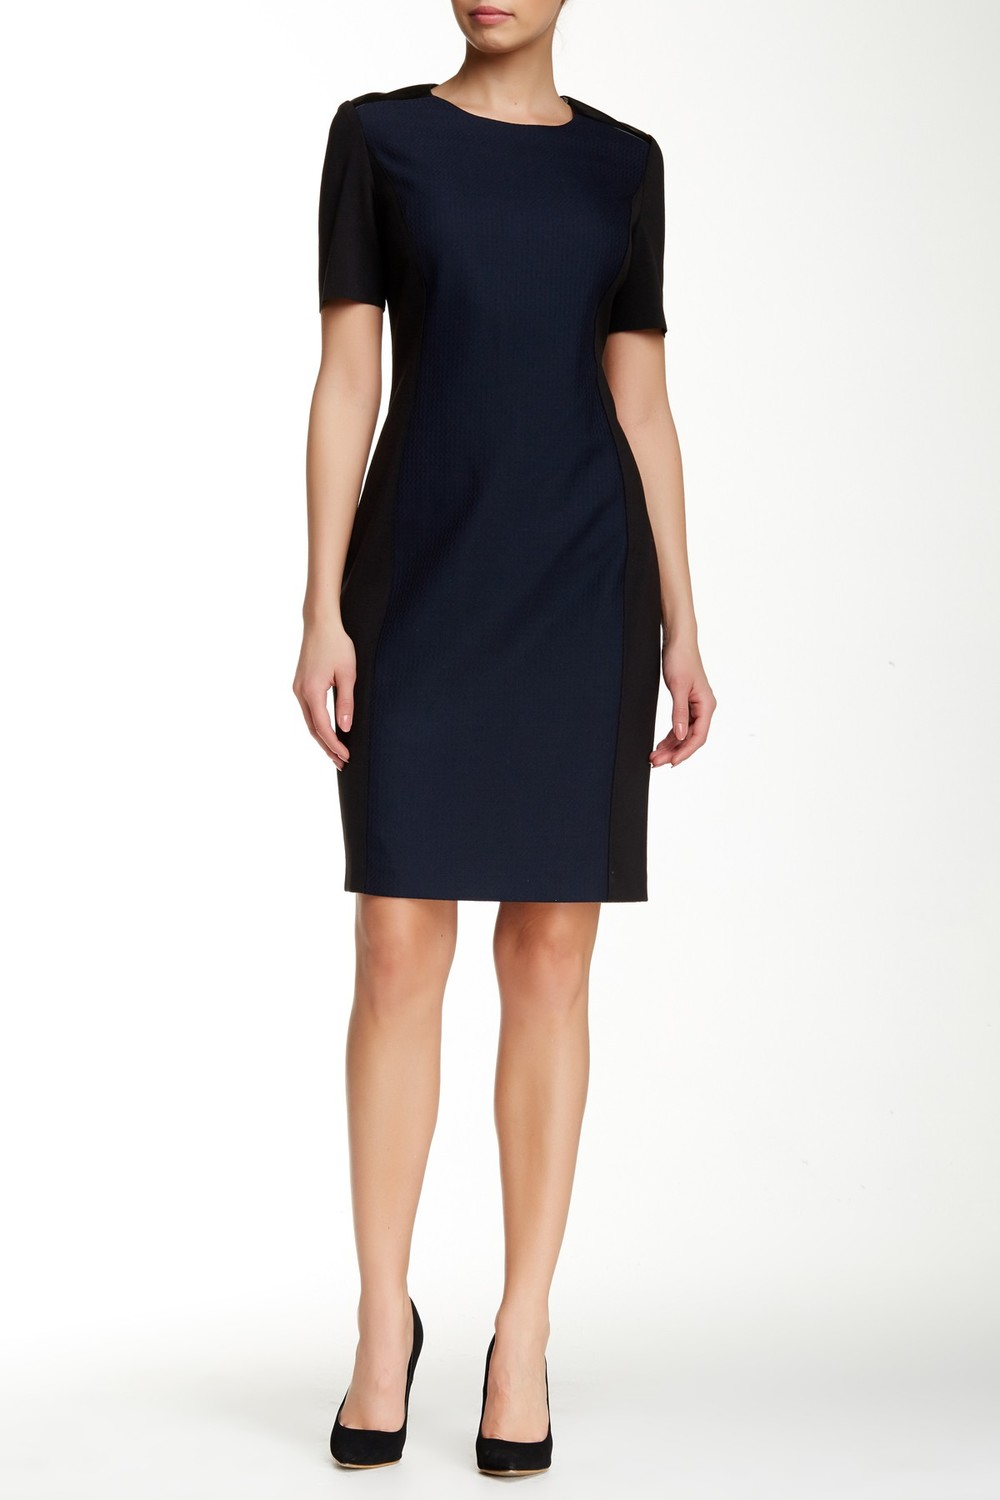 Tahari Avani Dress. Nordstrom Rack. Was: $158 Now: $89. (It's navy and black!)